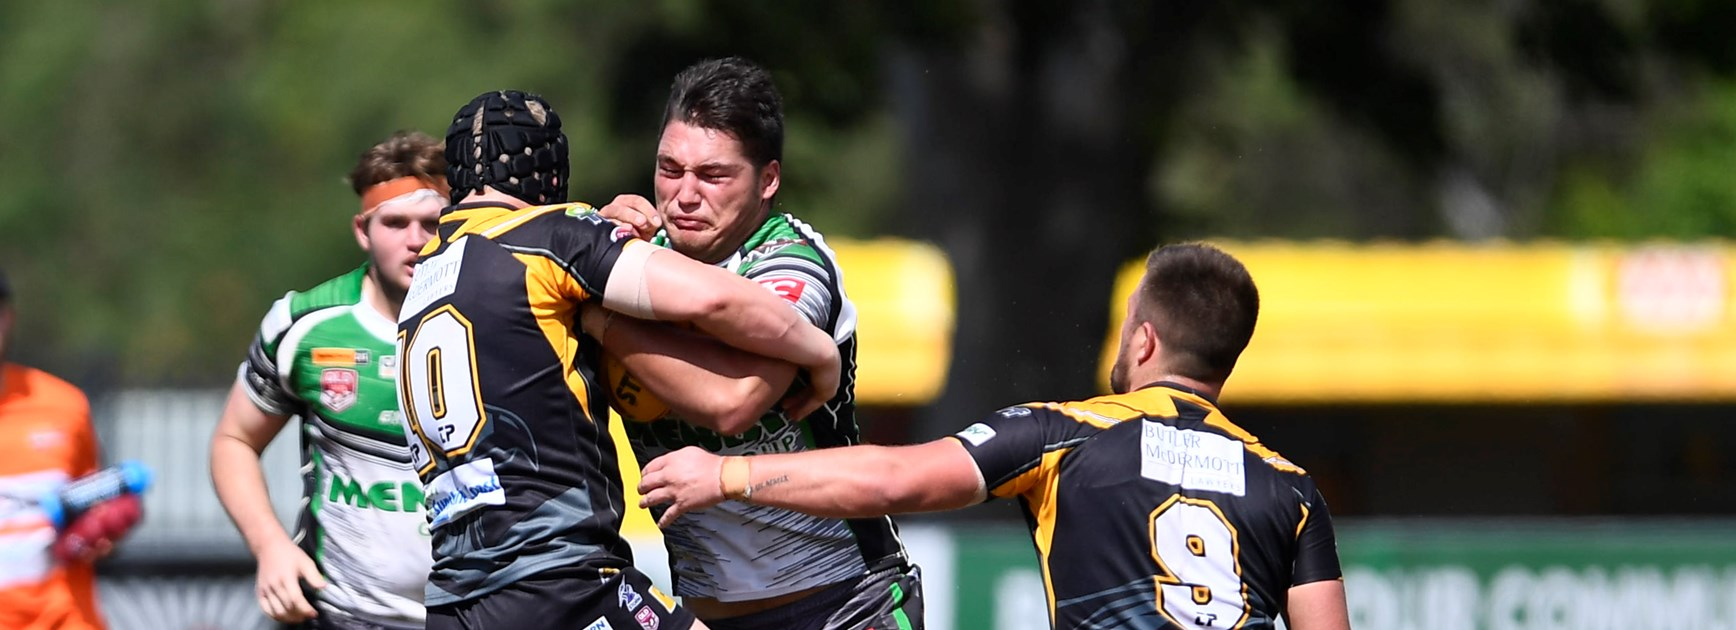 Hastings Deering Round 11 teams